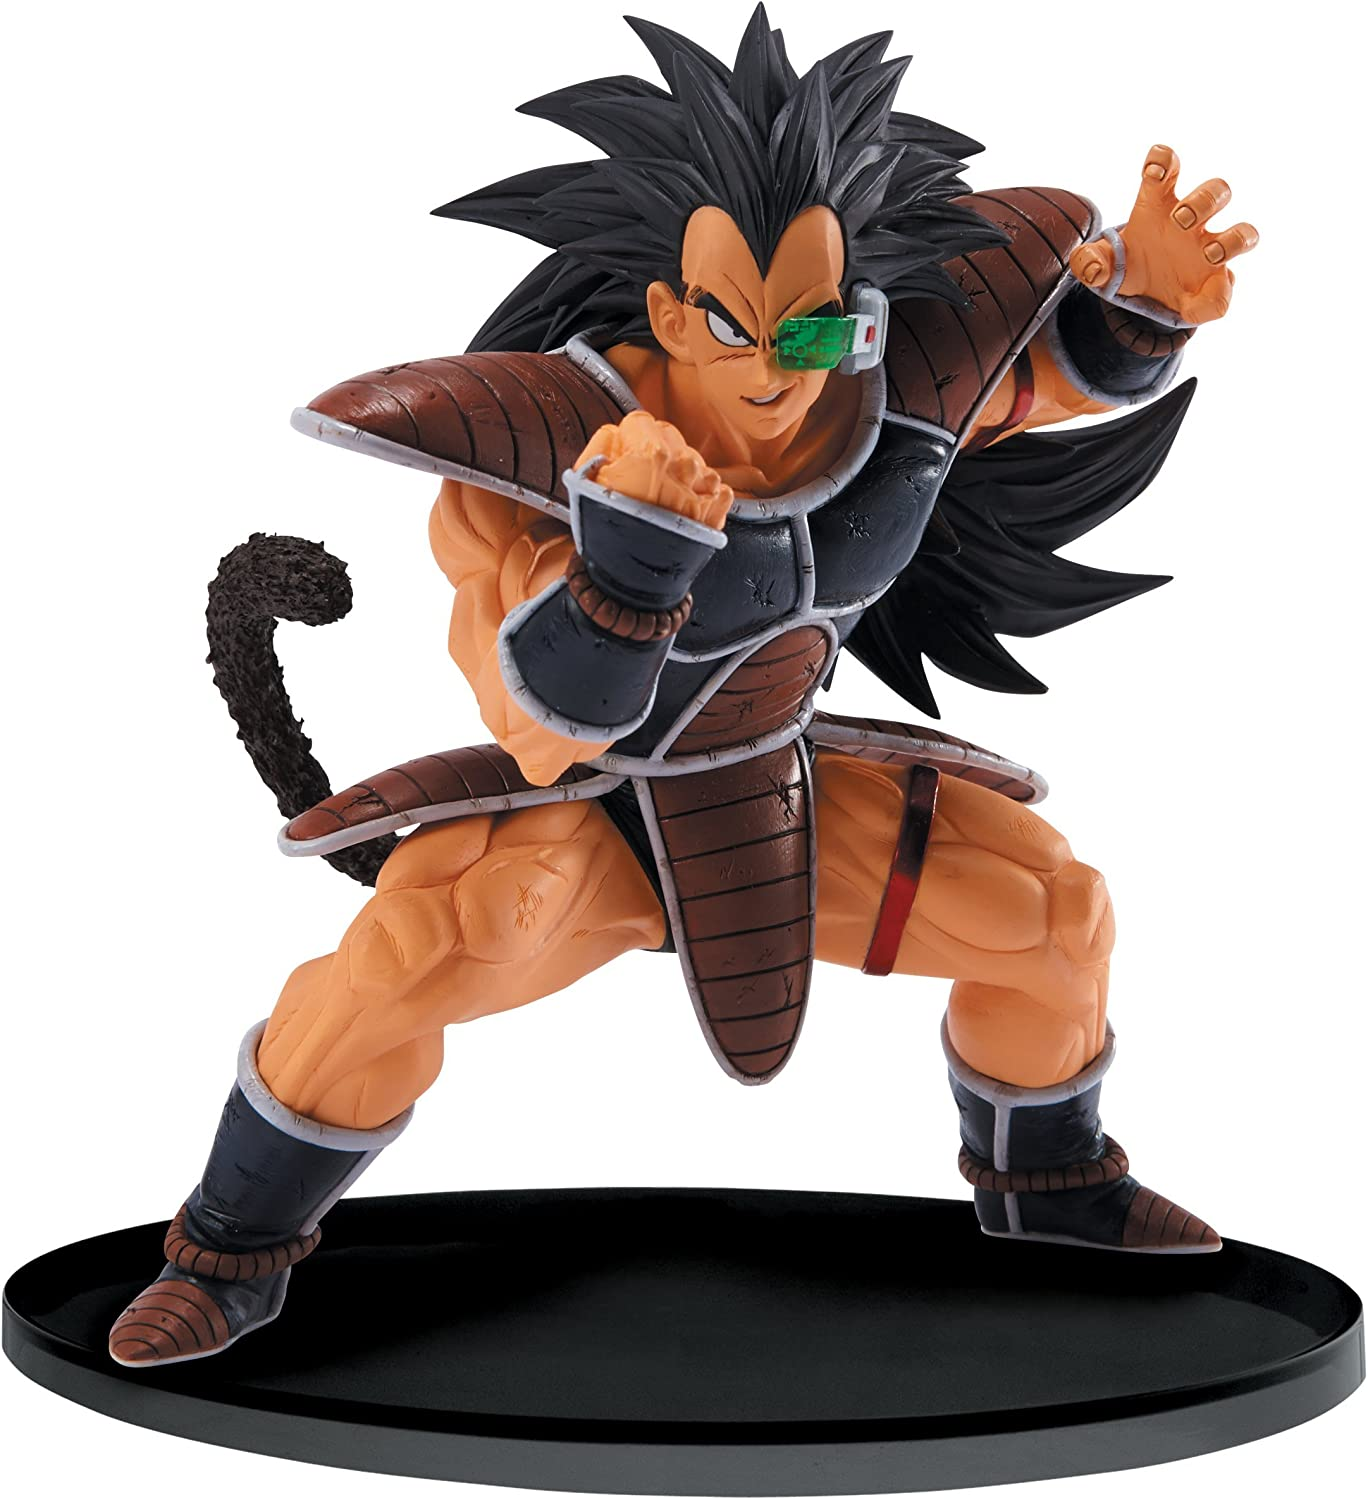 Dragon Ball Z SCultures Son Gokou Figure Budokai Tenkaichi 5 Anime Toy In Box